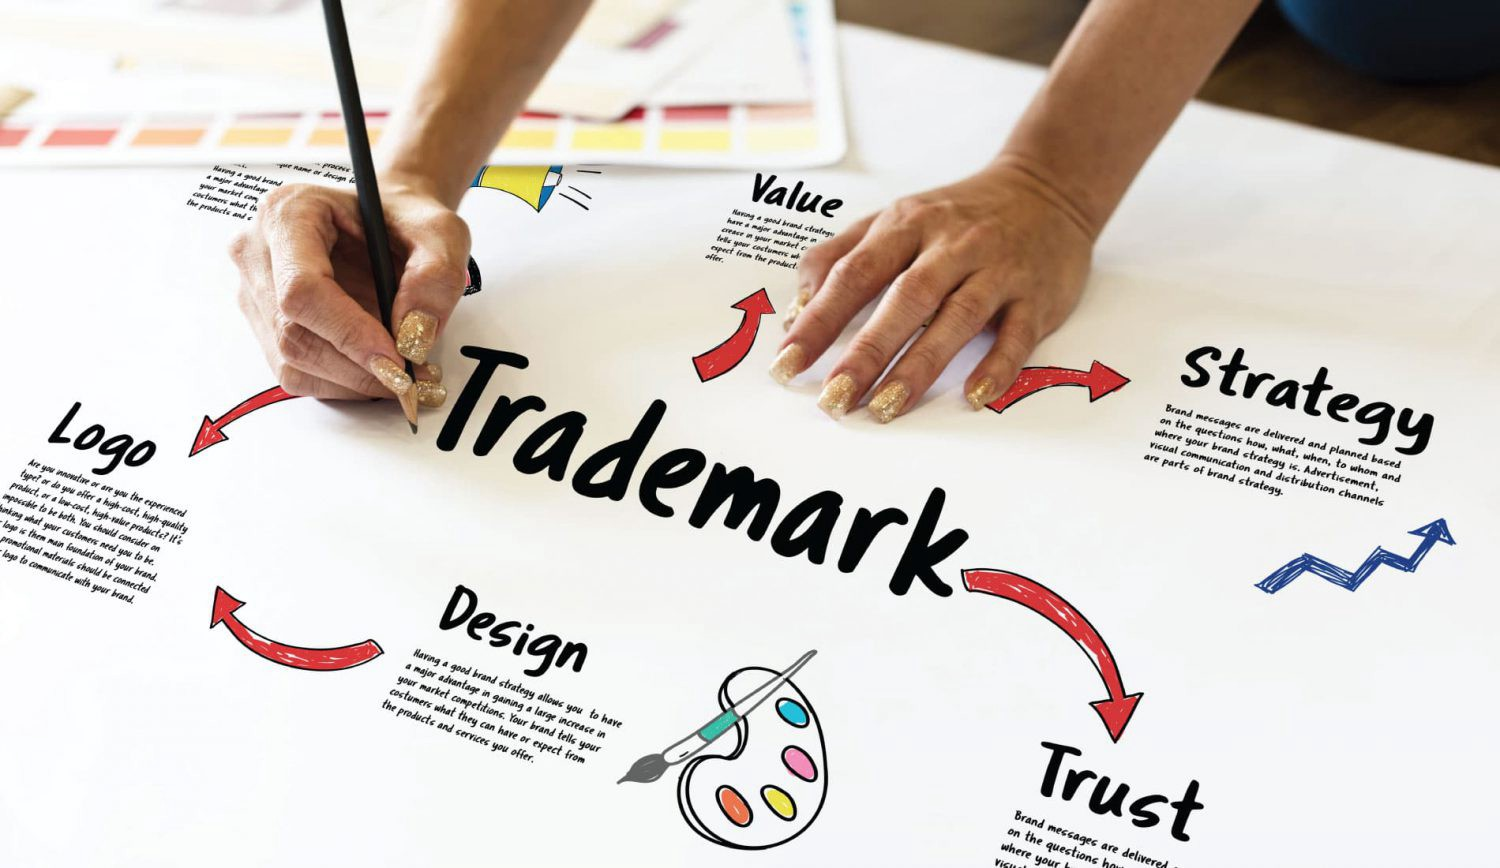 Top 5 Things to Know About International Trademark Registration 1